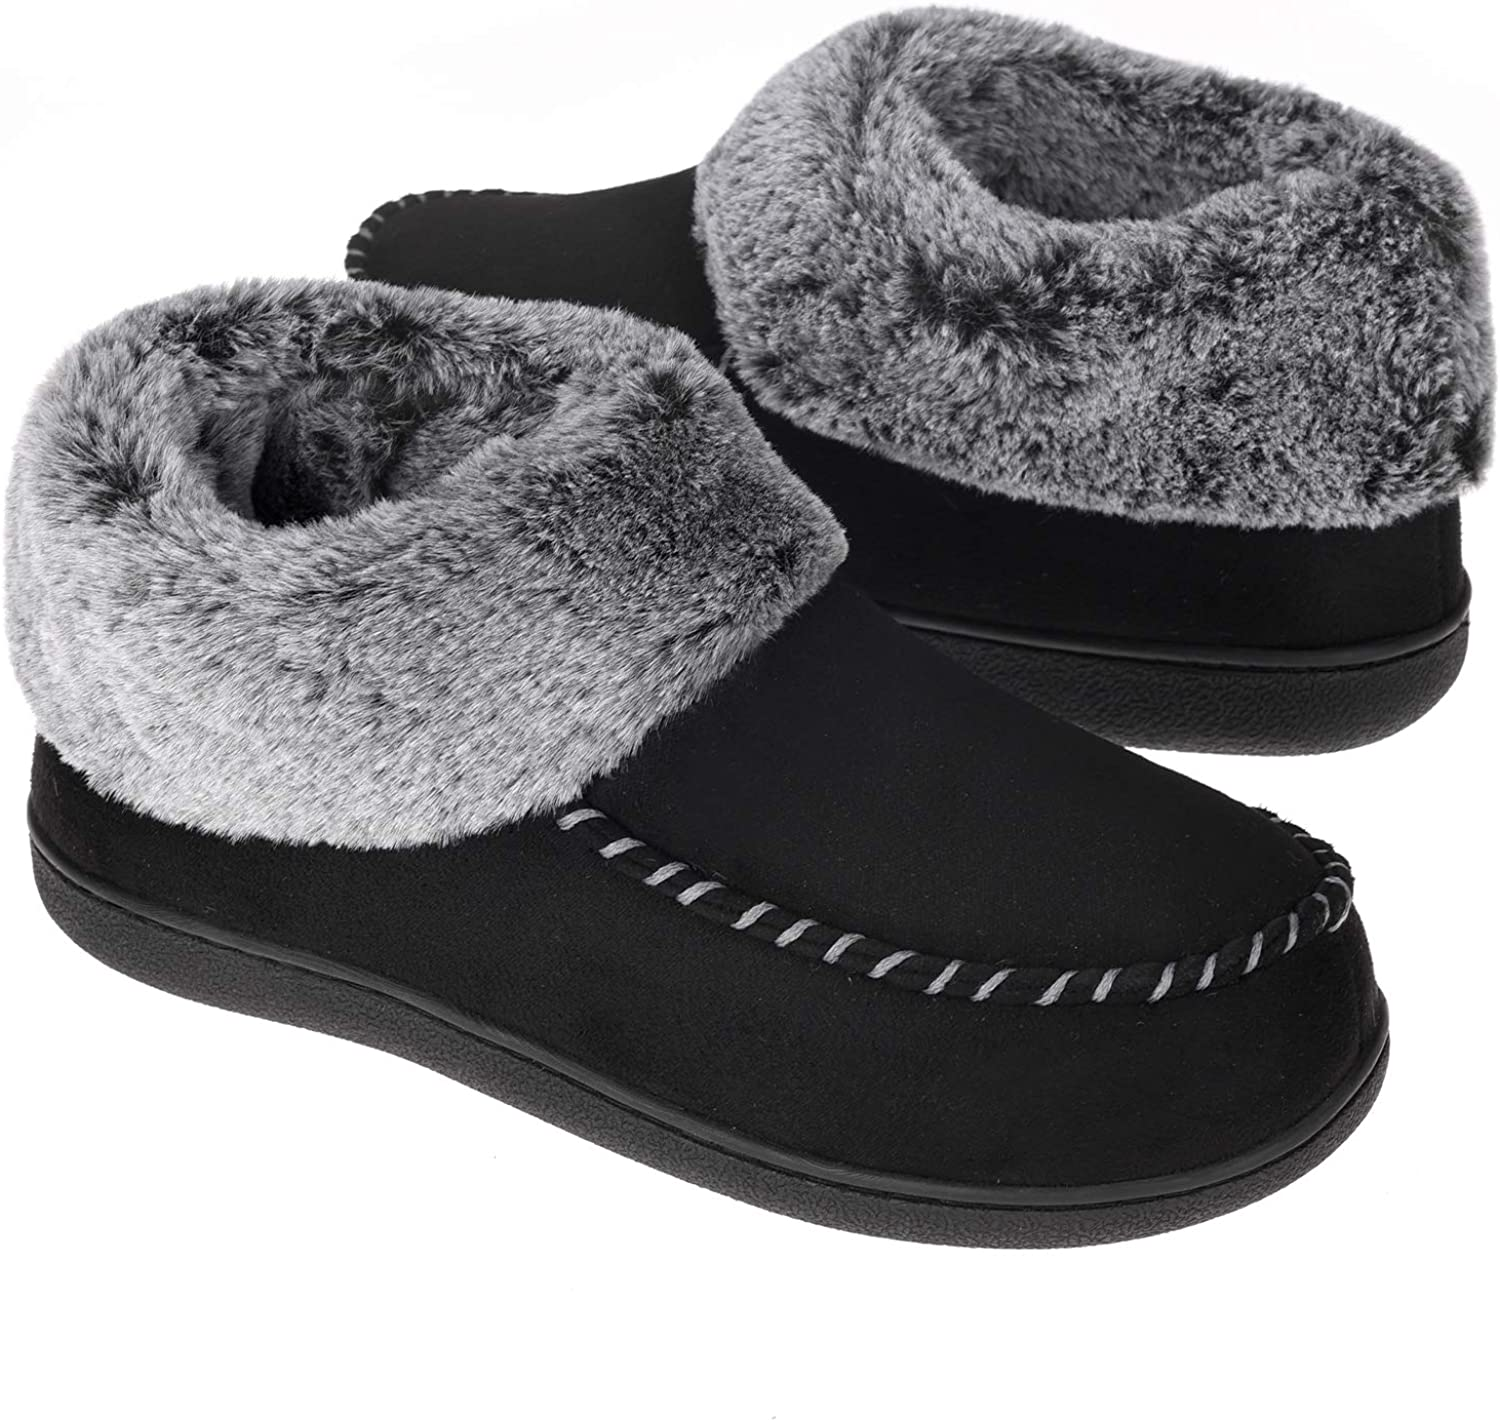 Women's Bootie Slippers Suede Moccasin Boots Fuzzy Plush Faux Fur House Shoes Winter Warm Memory Foam Non-Slip Indoor Outdoor